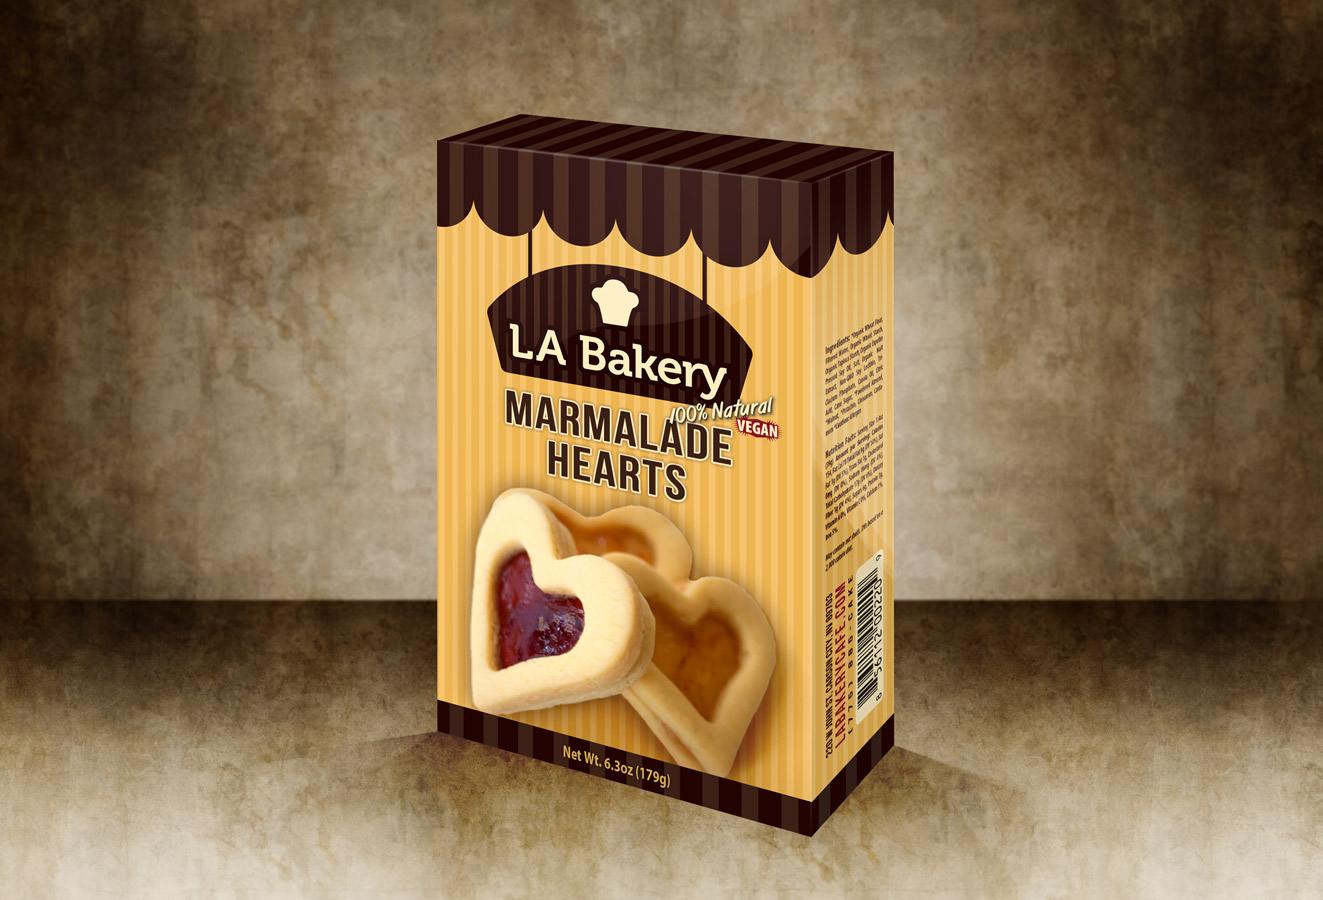 LA Bakery Product Package